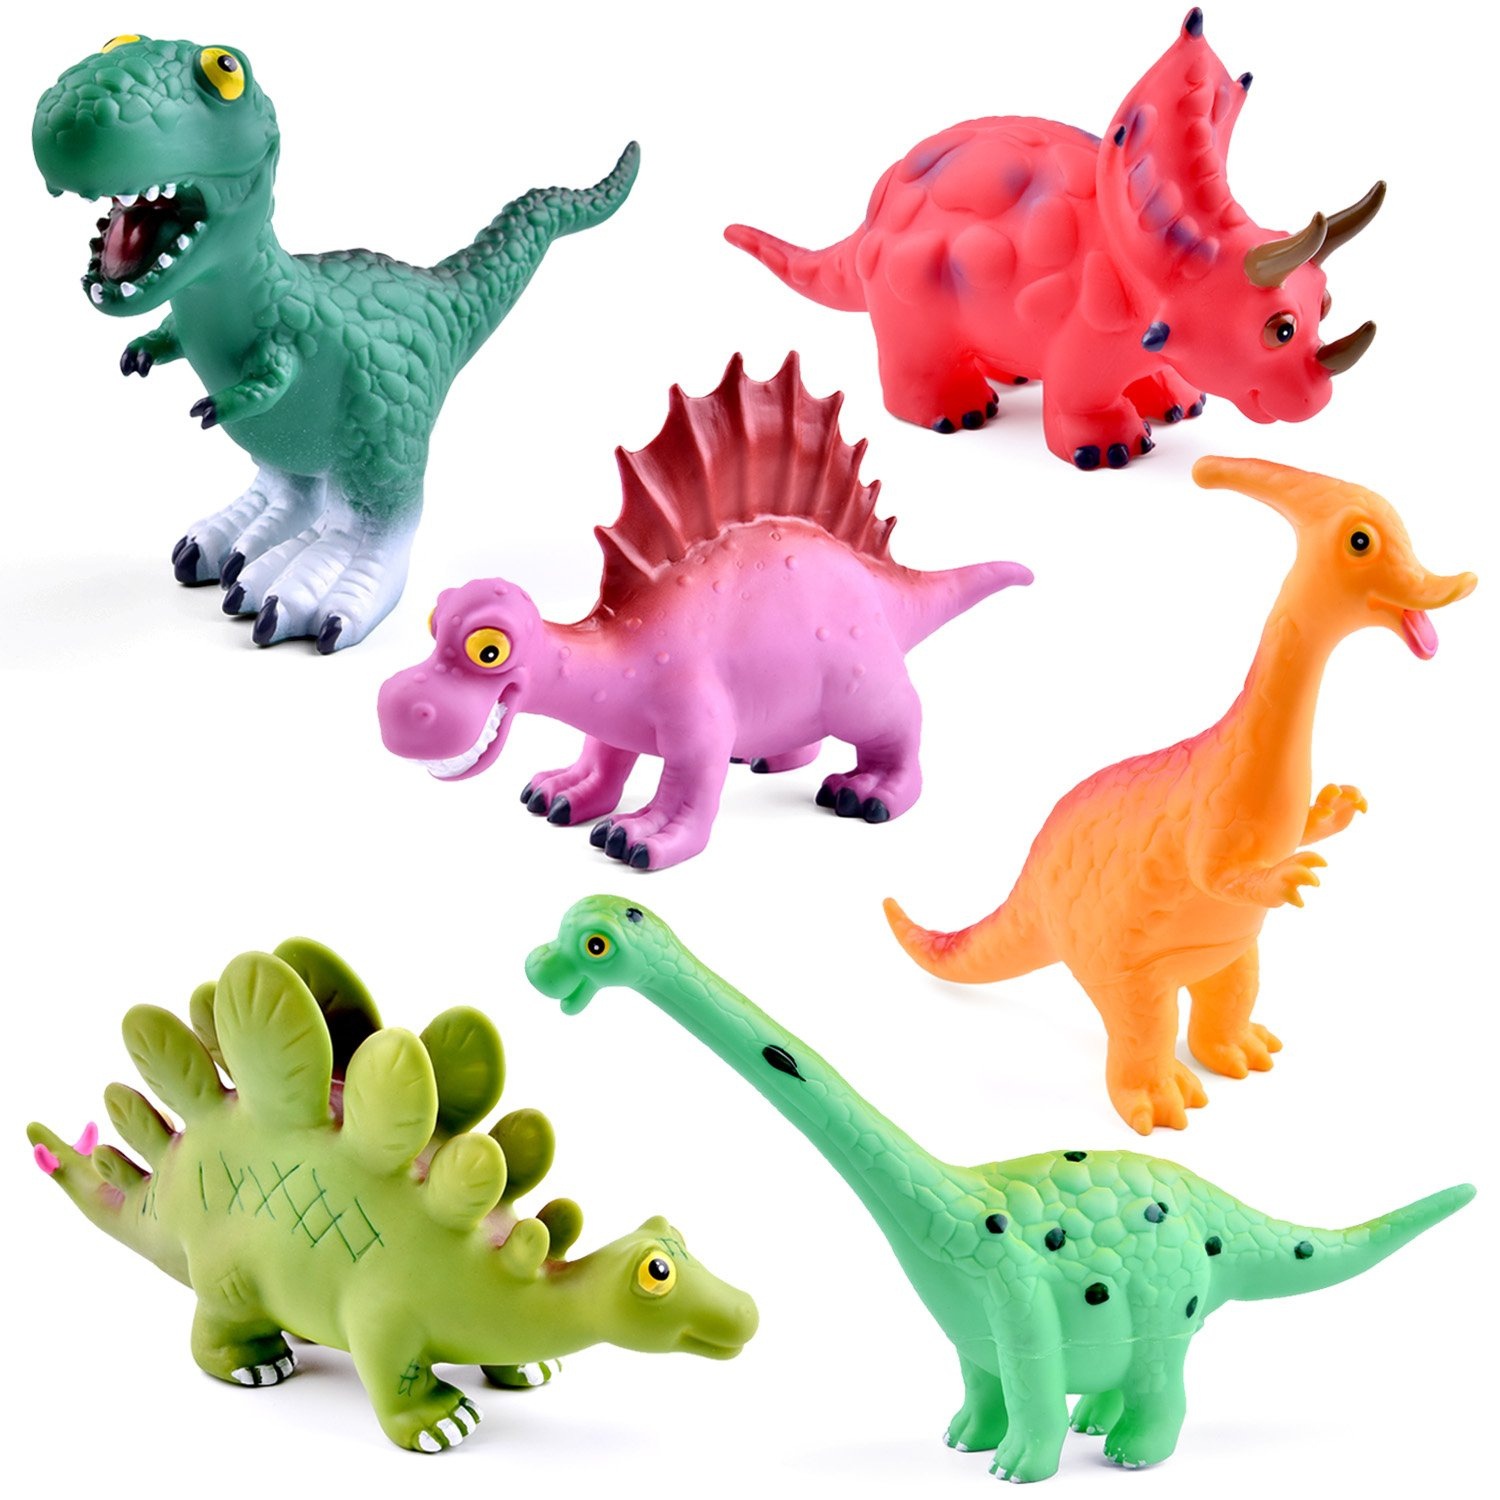 FUN LITTLE TOYS 9 Inches to 12 Inches Dinosaur Baby Bath Toys, 6 Pack Dinosaur Figures Playset, Water Squirt Toys, Perfect as Bathtub Toys, Dinosaur Party Supply, Party Favors, Toddler Birthday Gifts